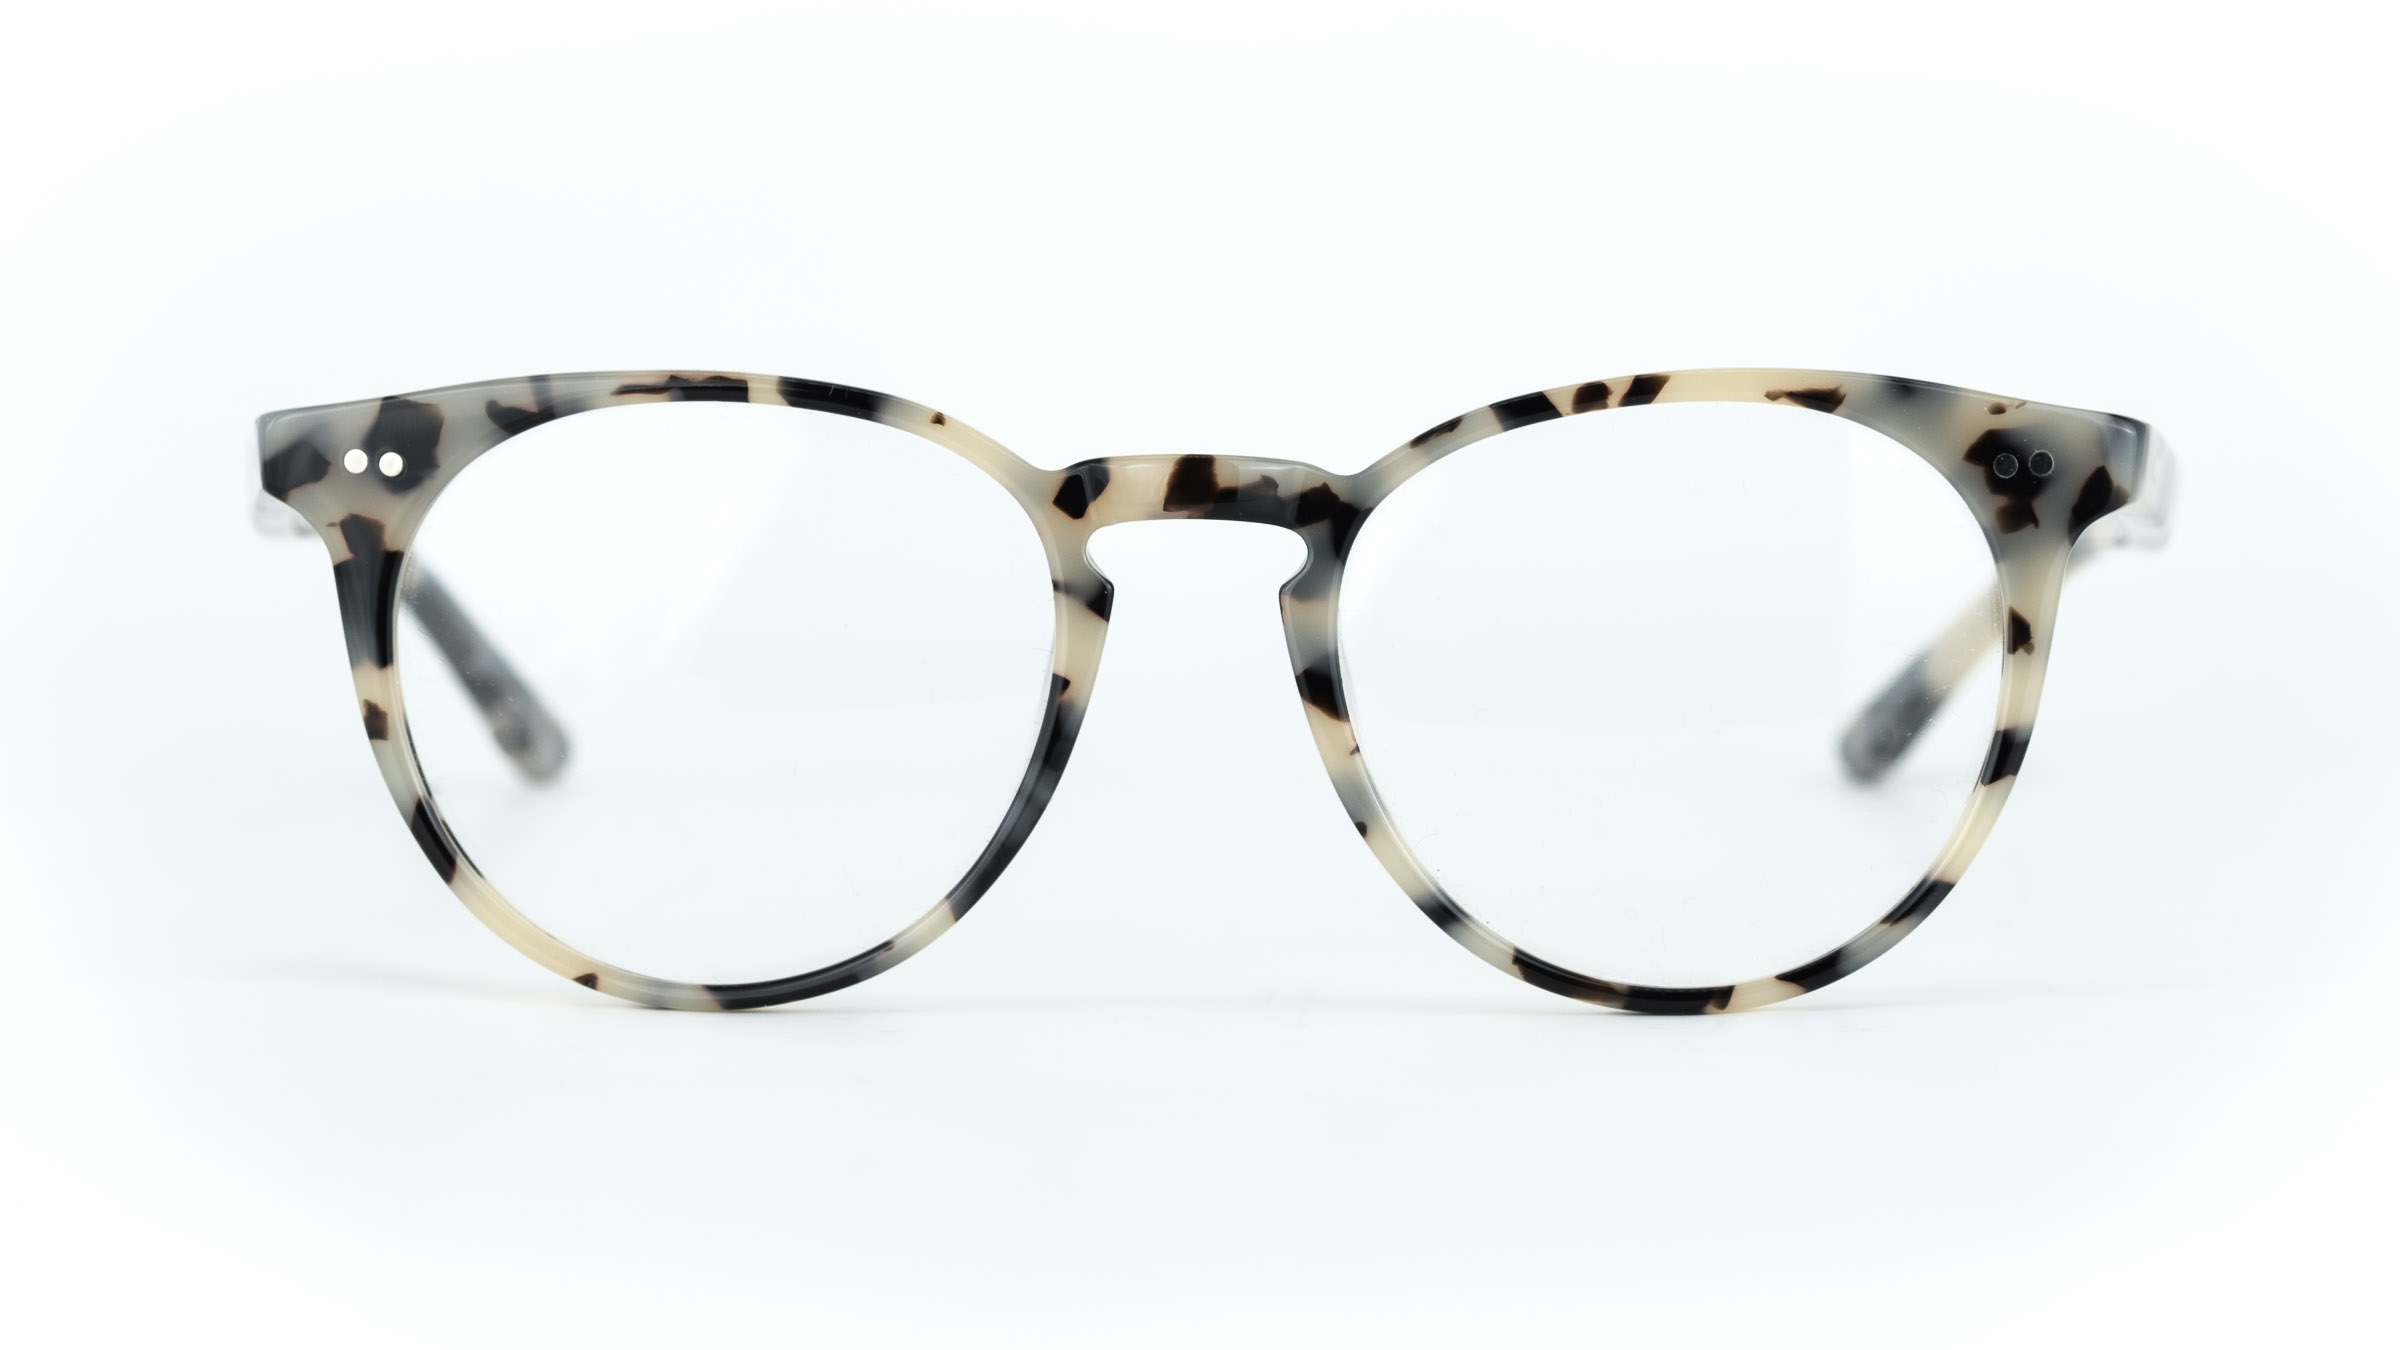 0ec9a8057e2d The Opticianado eyewear line has grown in exciting ways in the last couple  of years